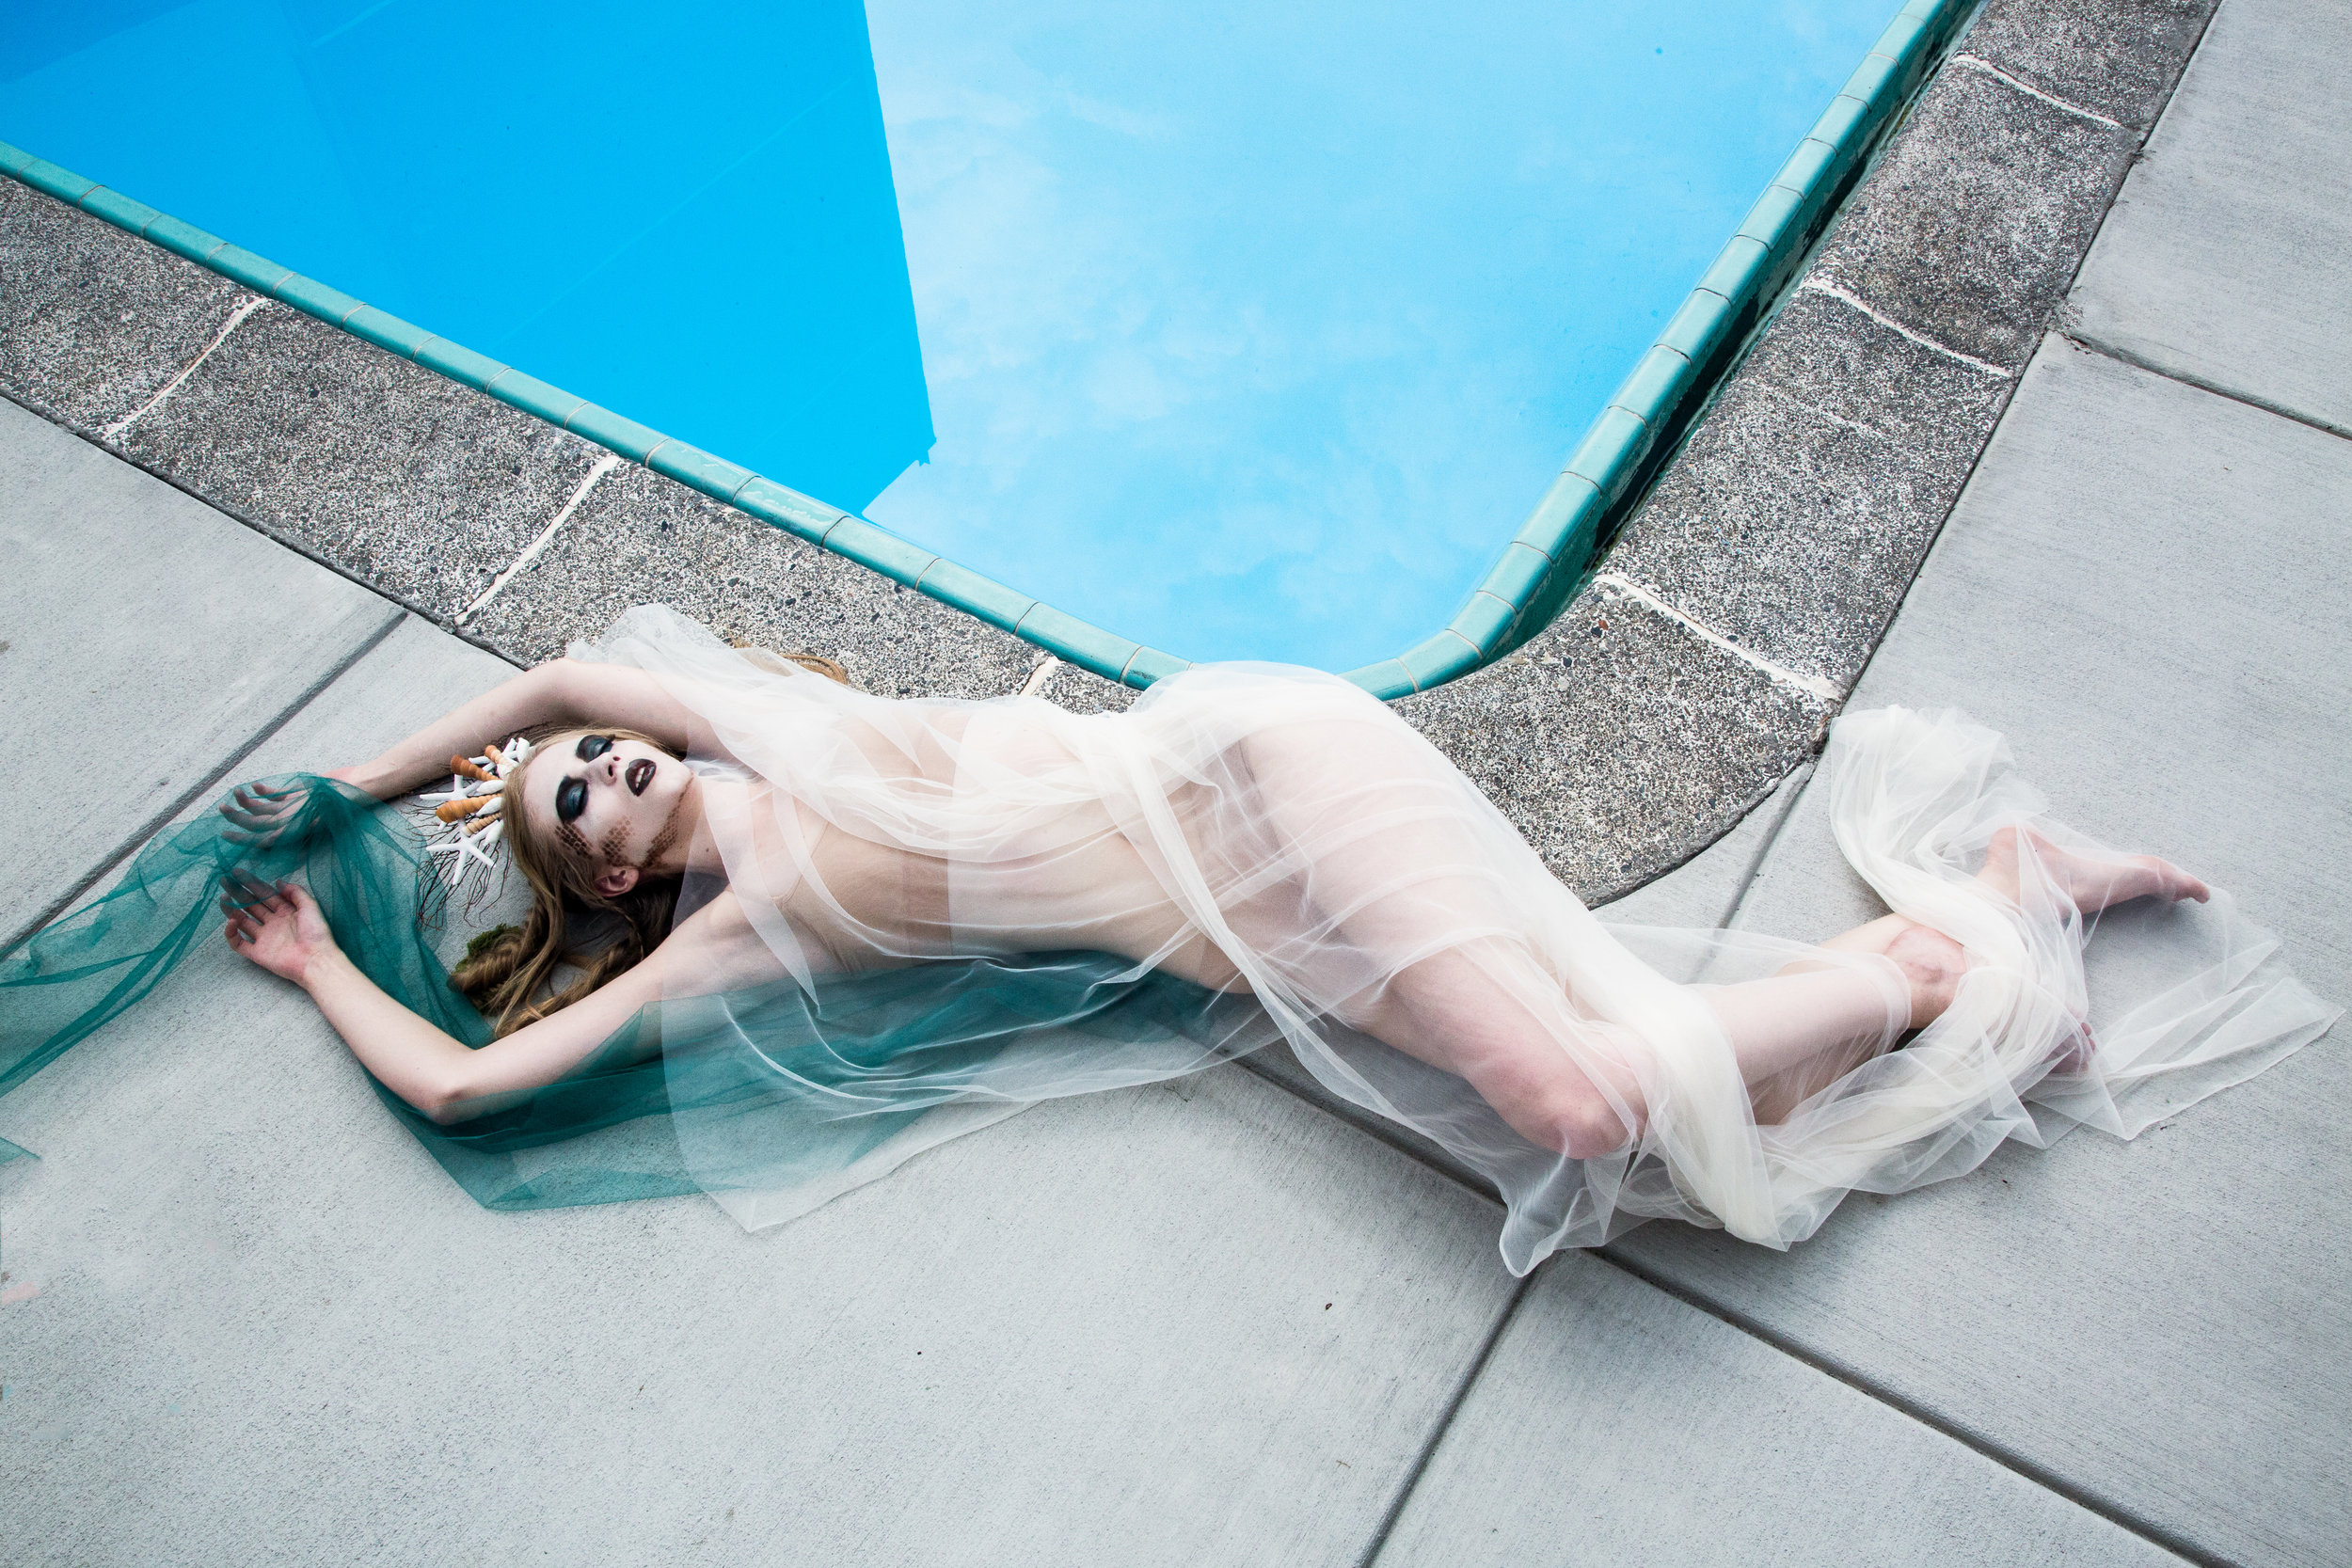 Sierra Voss Photography Mermaid Poolside Bask